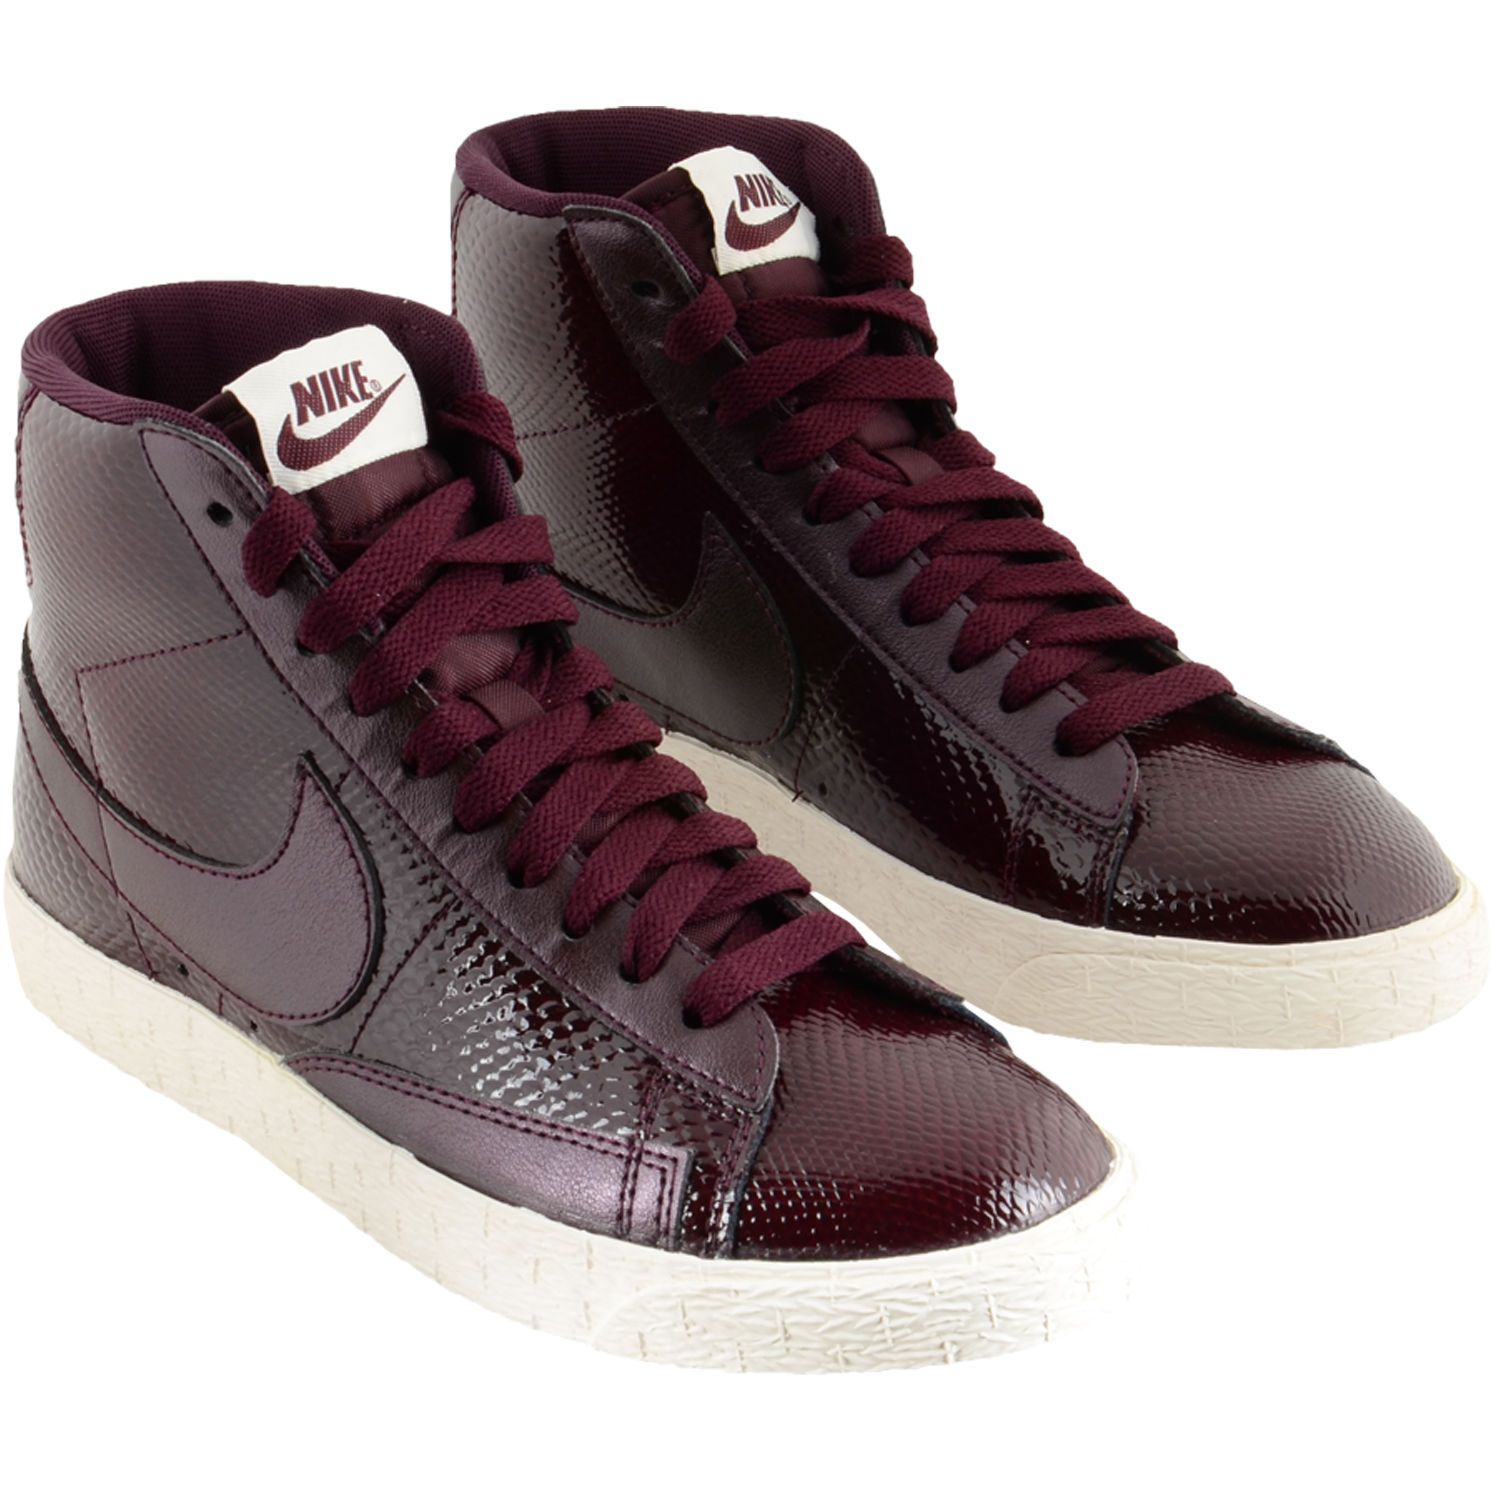 Nike Women's Blazer Mid Leather Premium